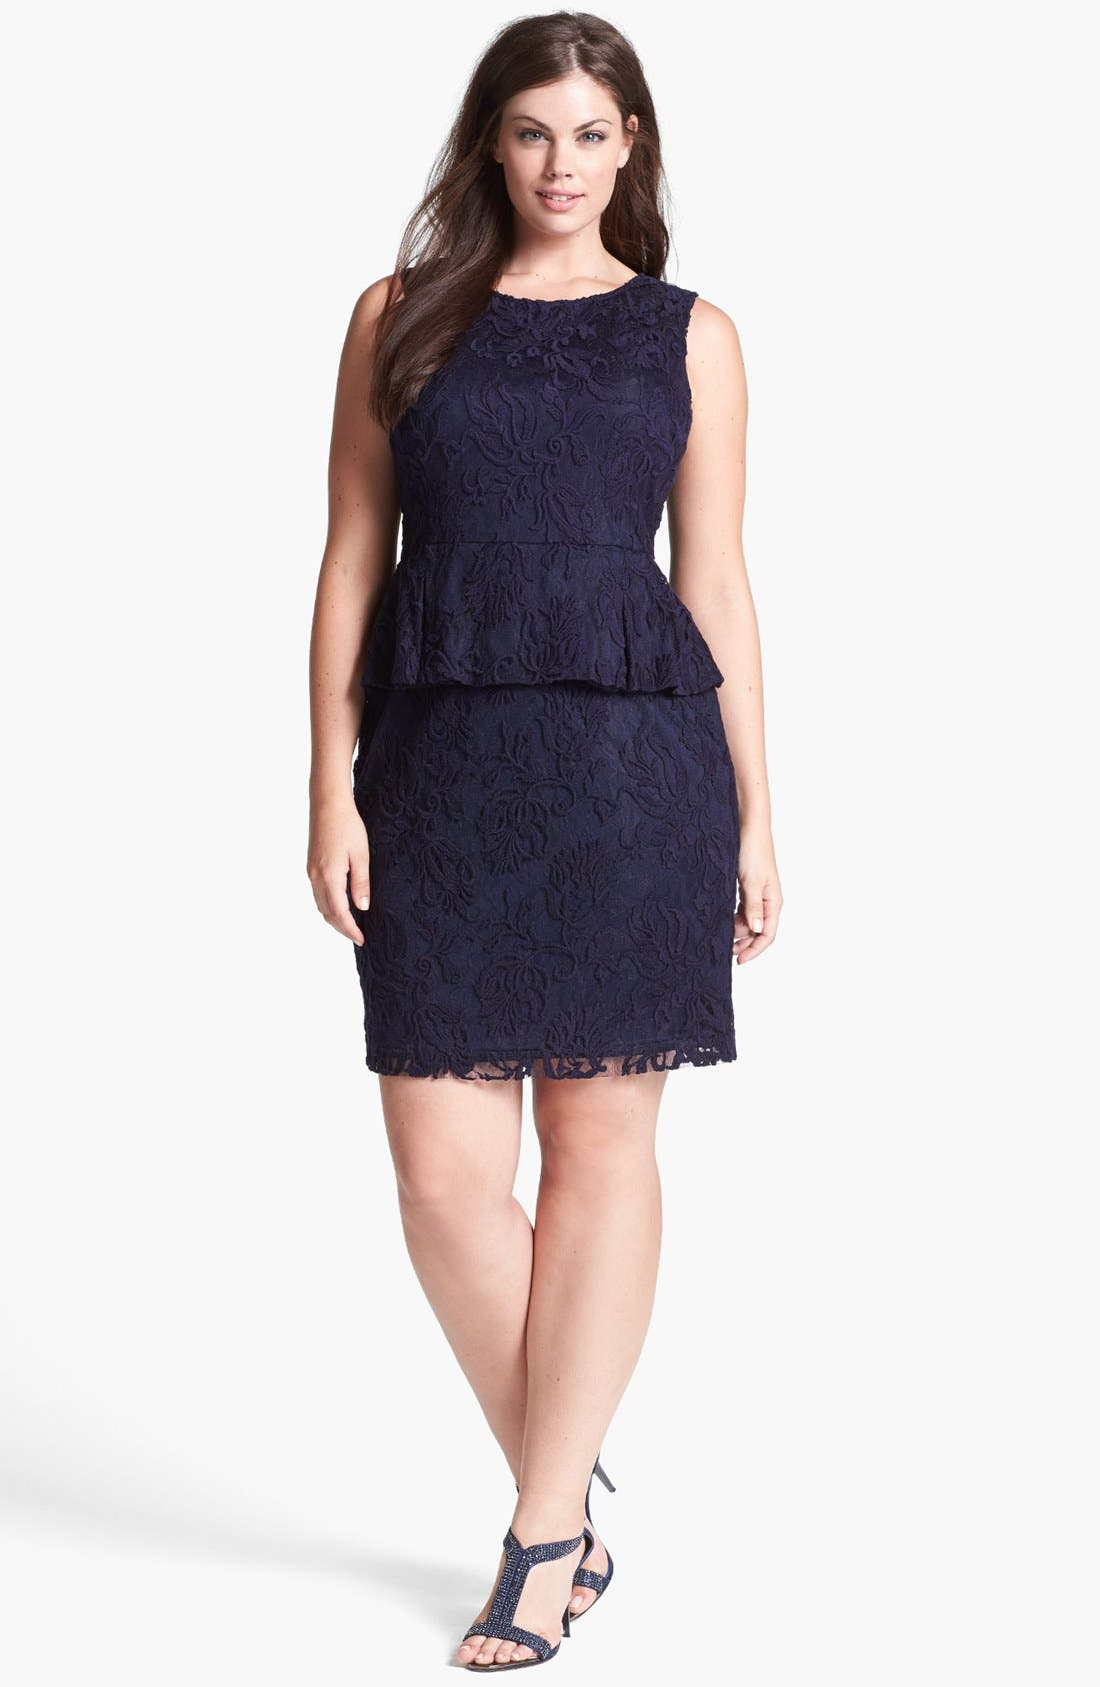 Alternate Image 1 Selected - Adrianna Papell Lace Peplum Sheath Dress (Plus Size)